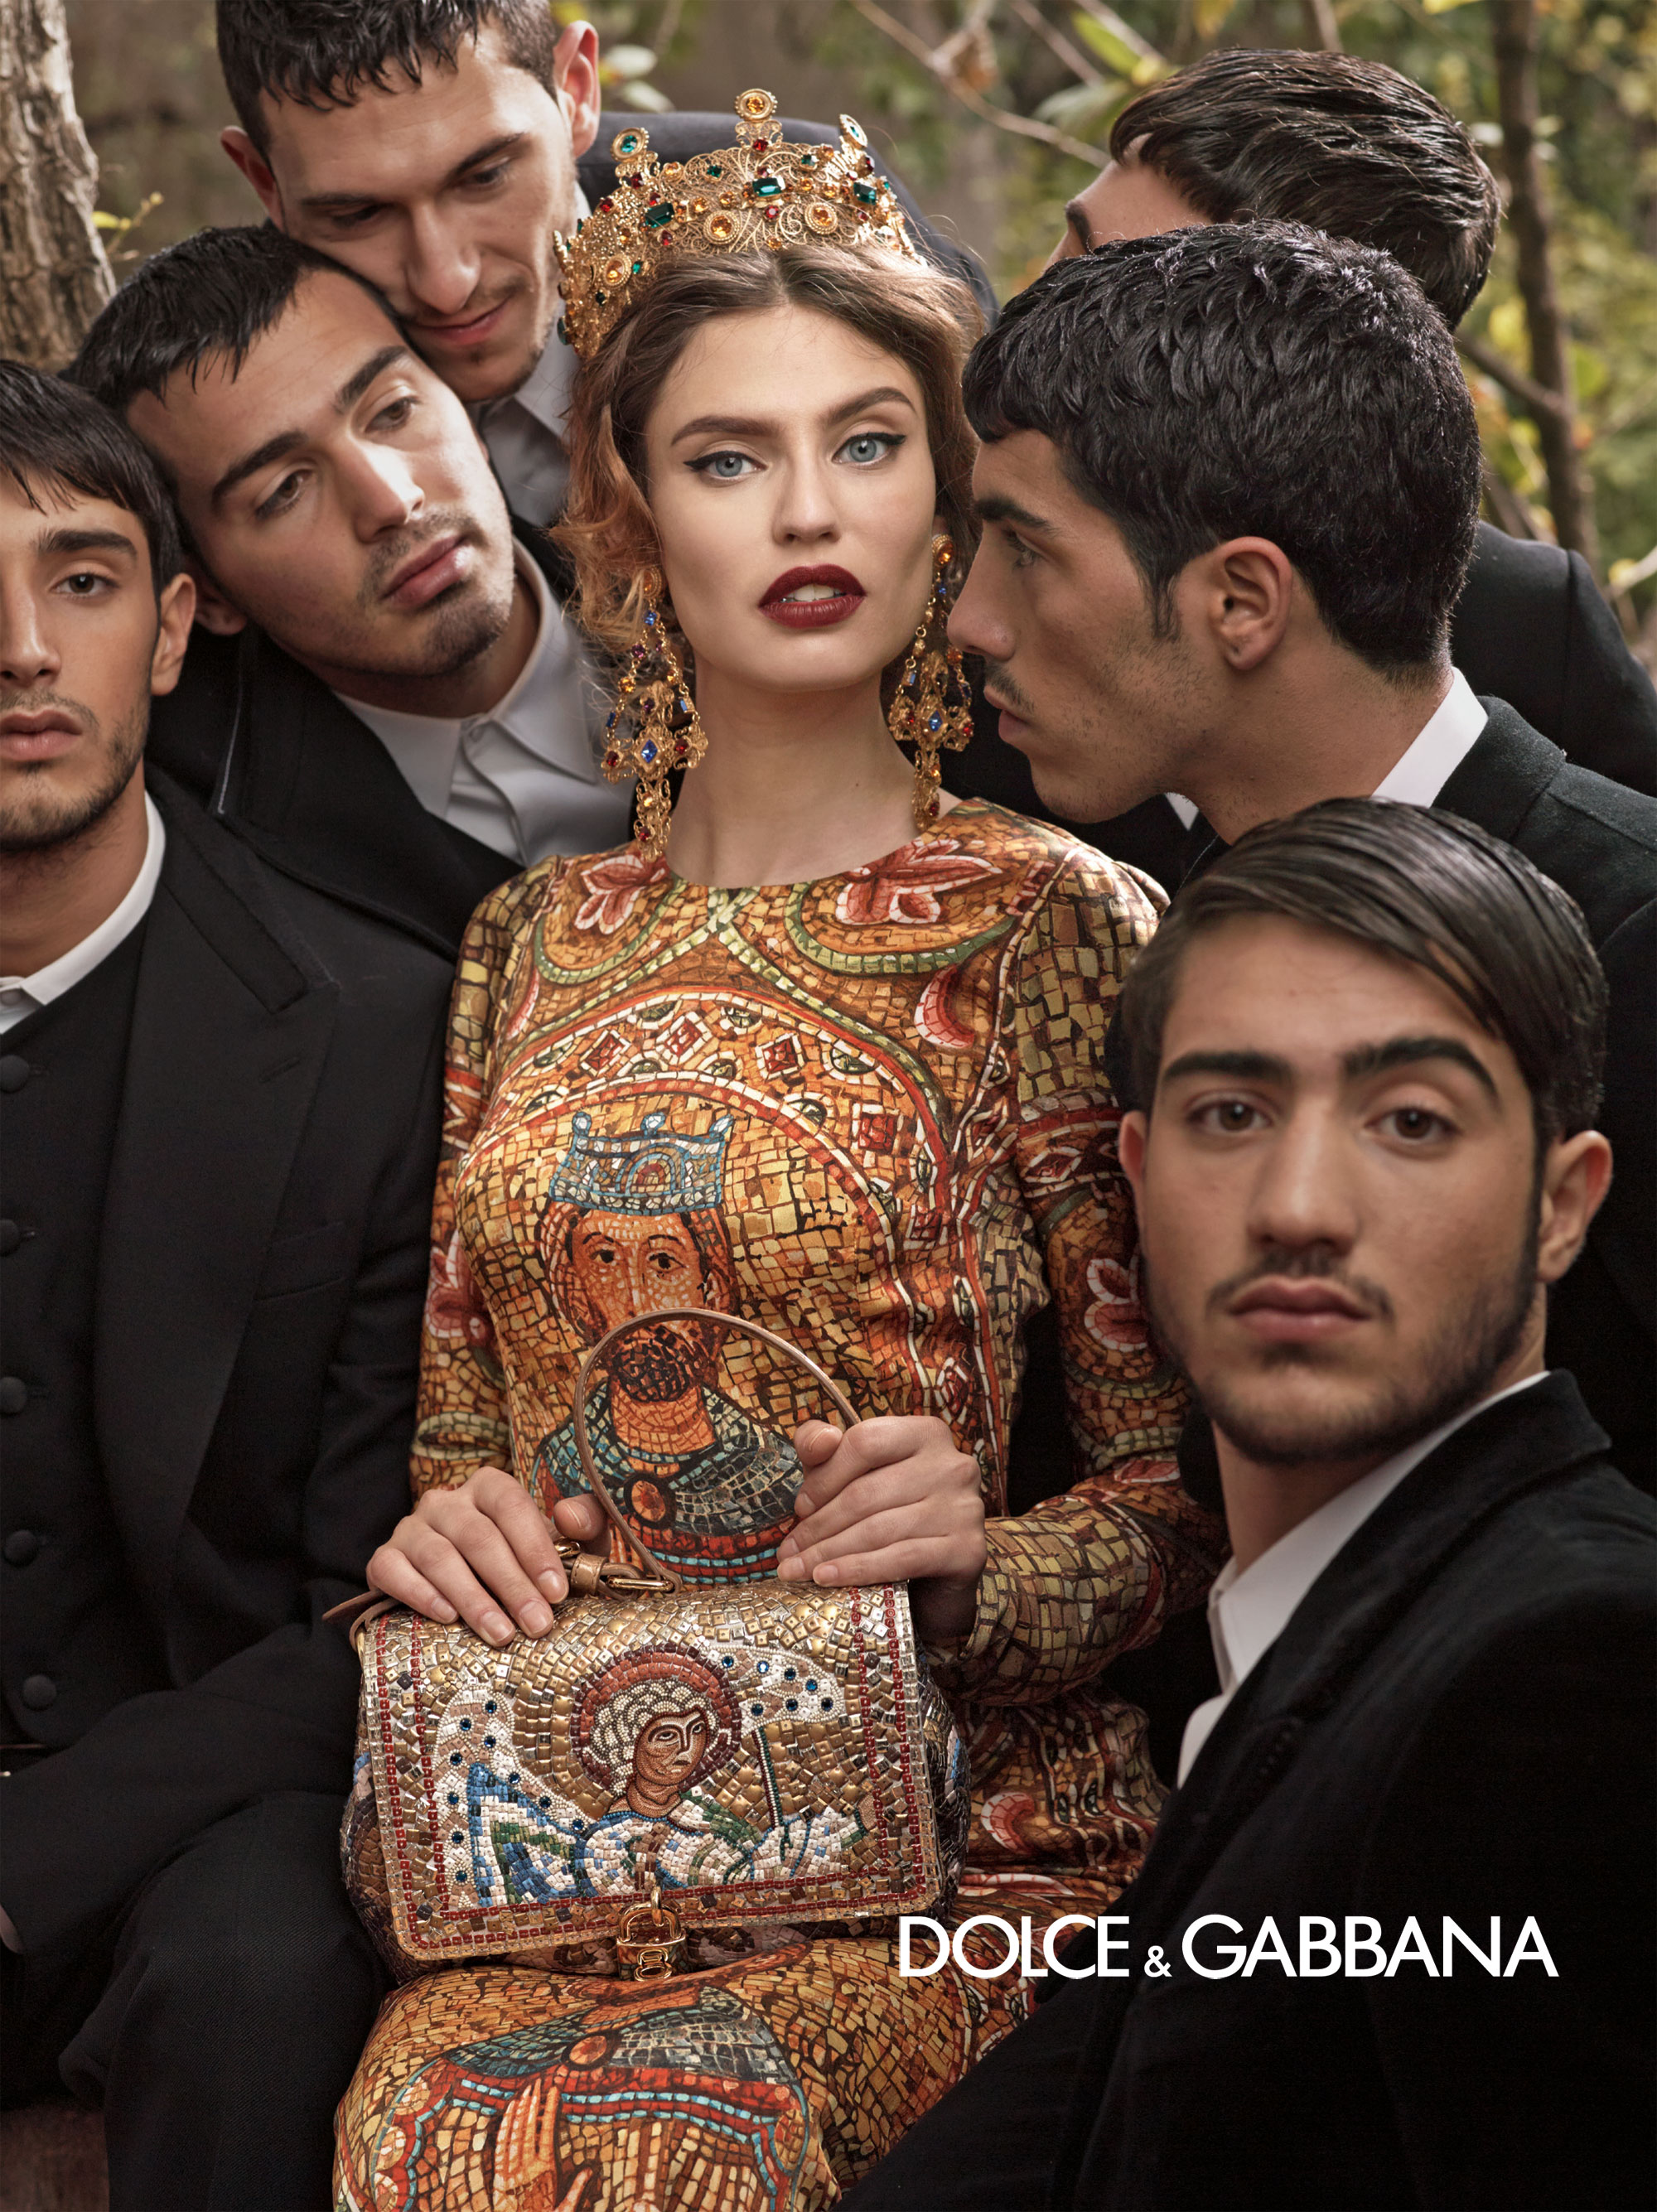 Dolce And Gabbana Fw 2014 Women Adv Campaign 9